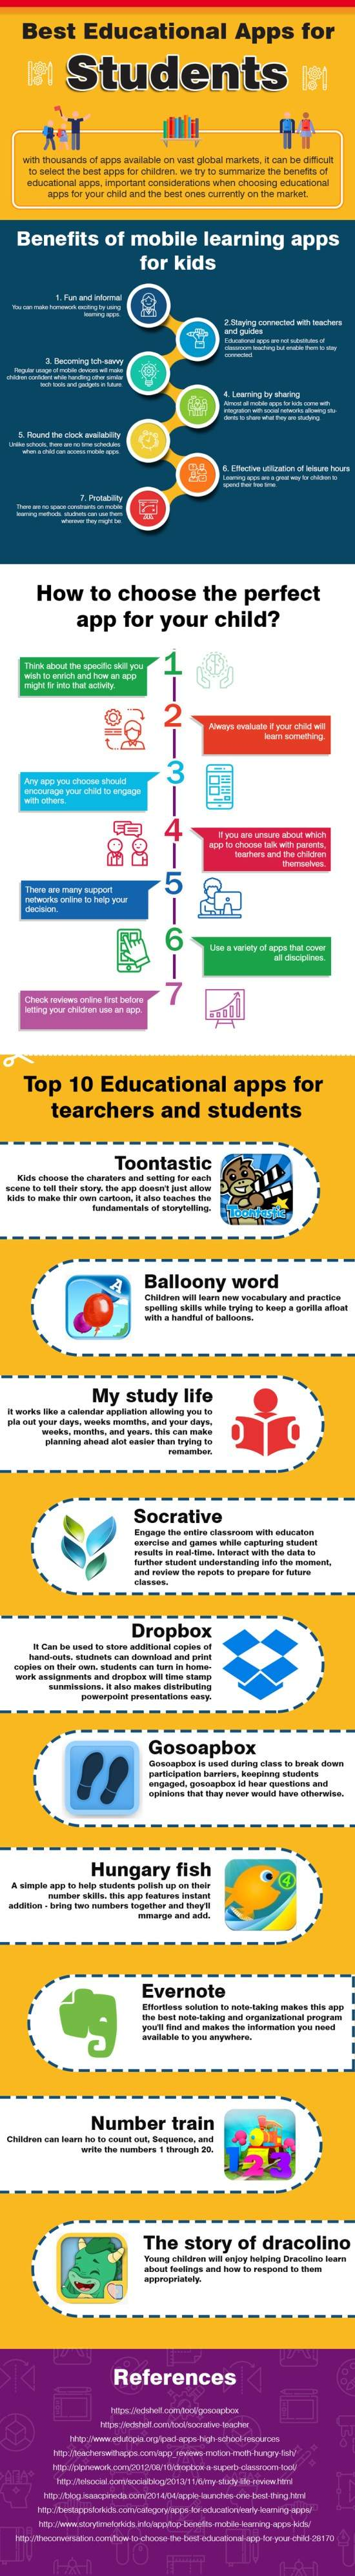 Best Educational Apps for Students #infographic